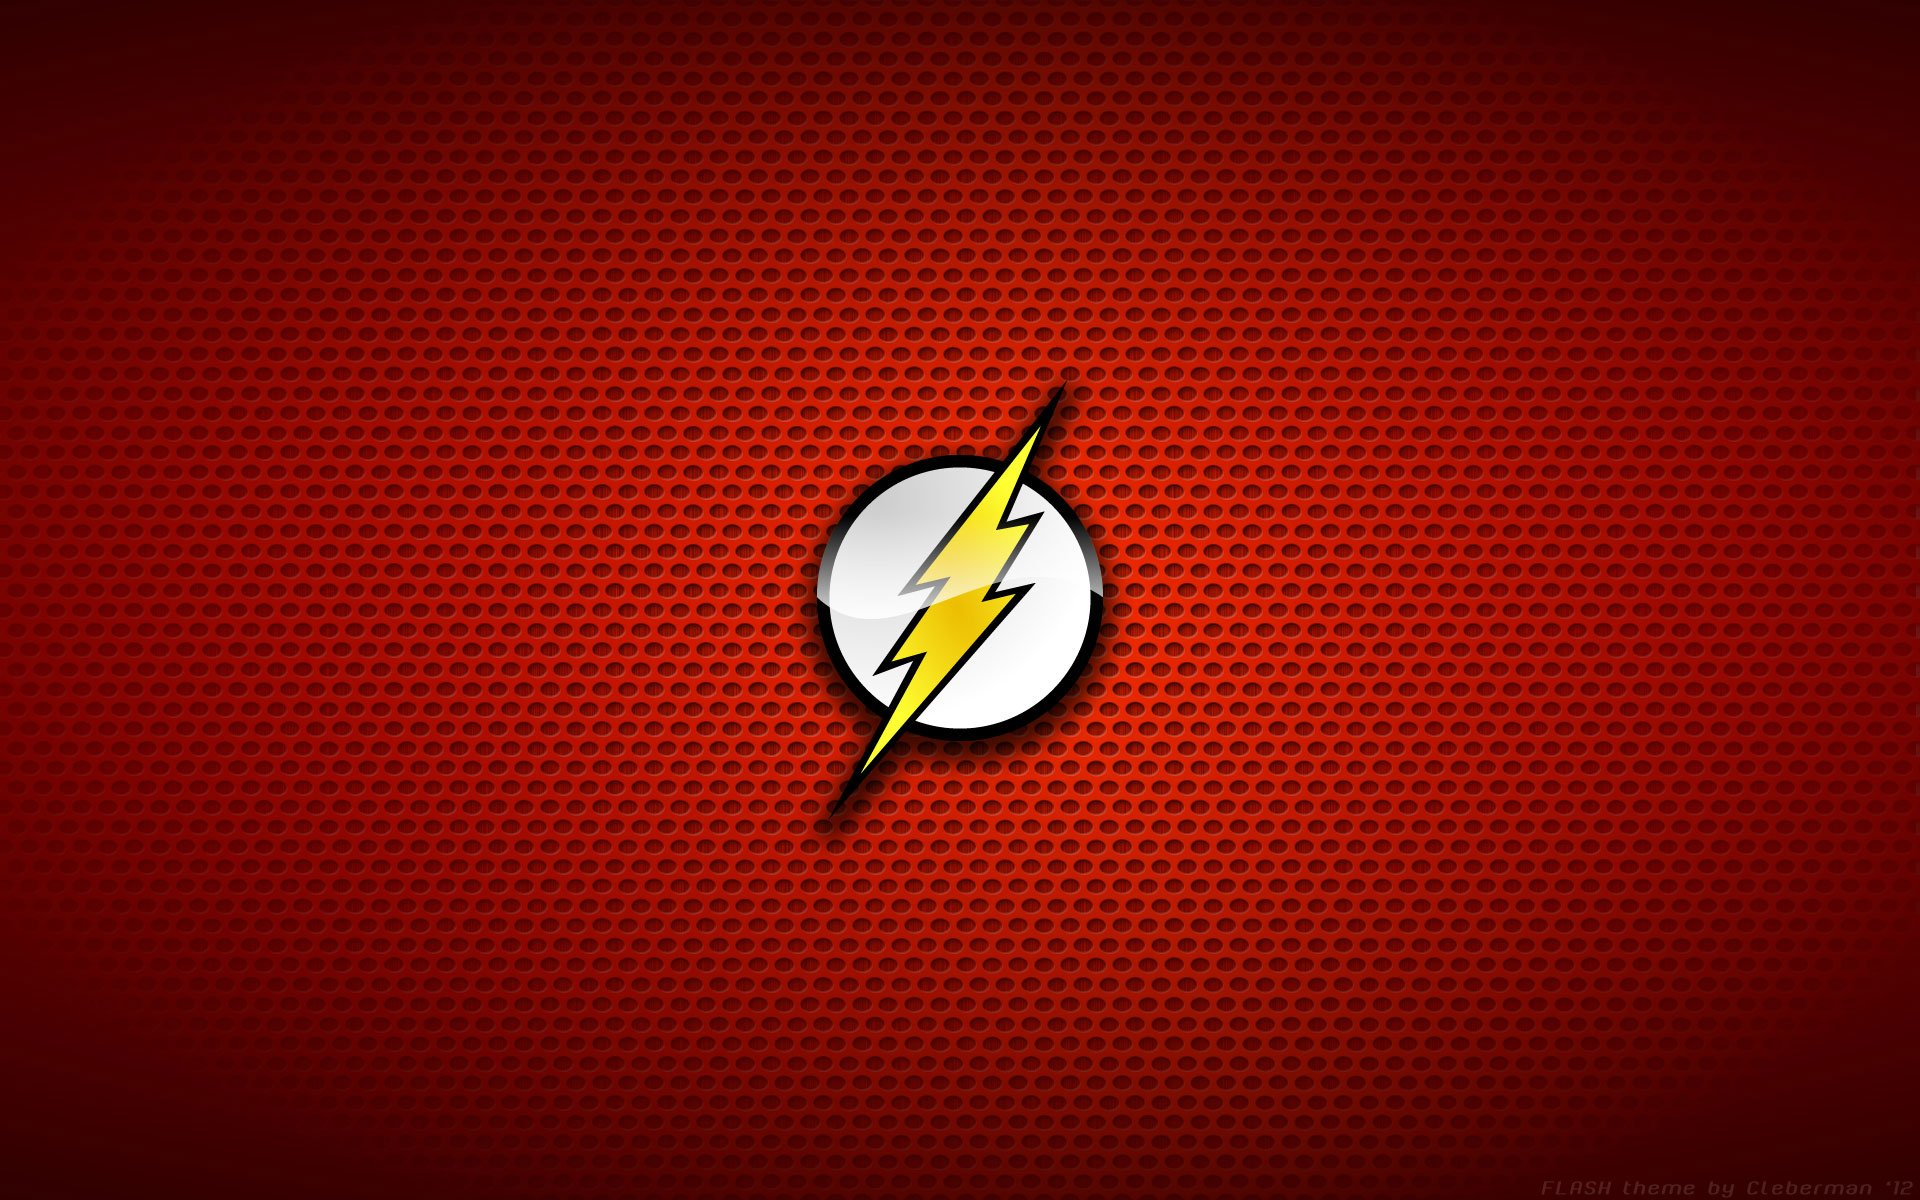 WB Reveals First Image of The Flash   Rogue Planet 1920x1200